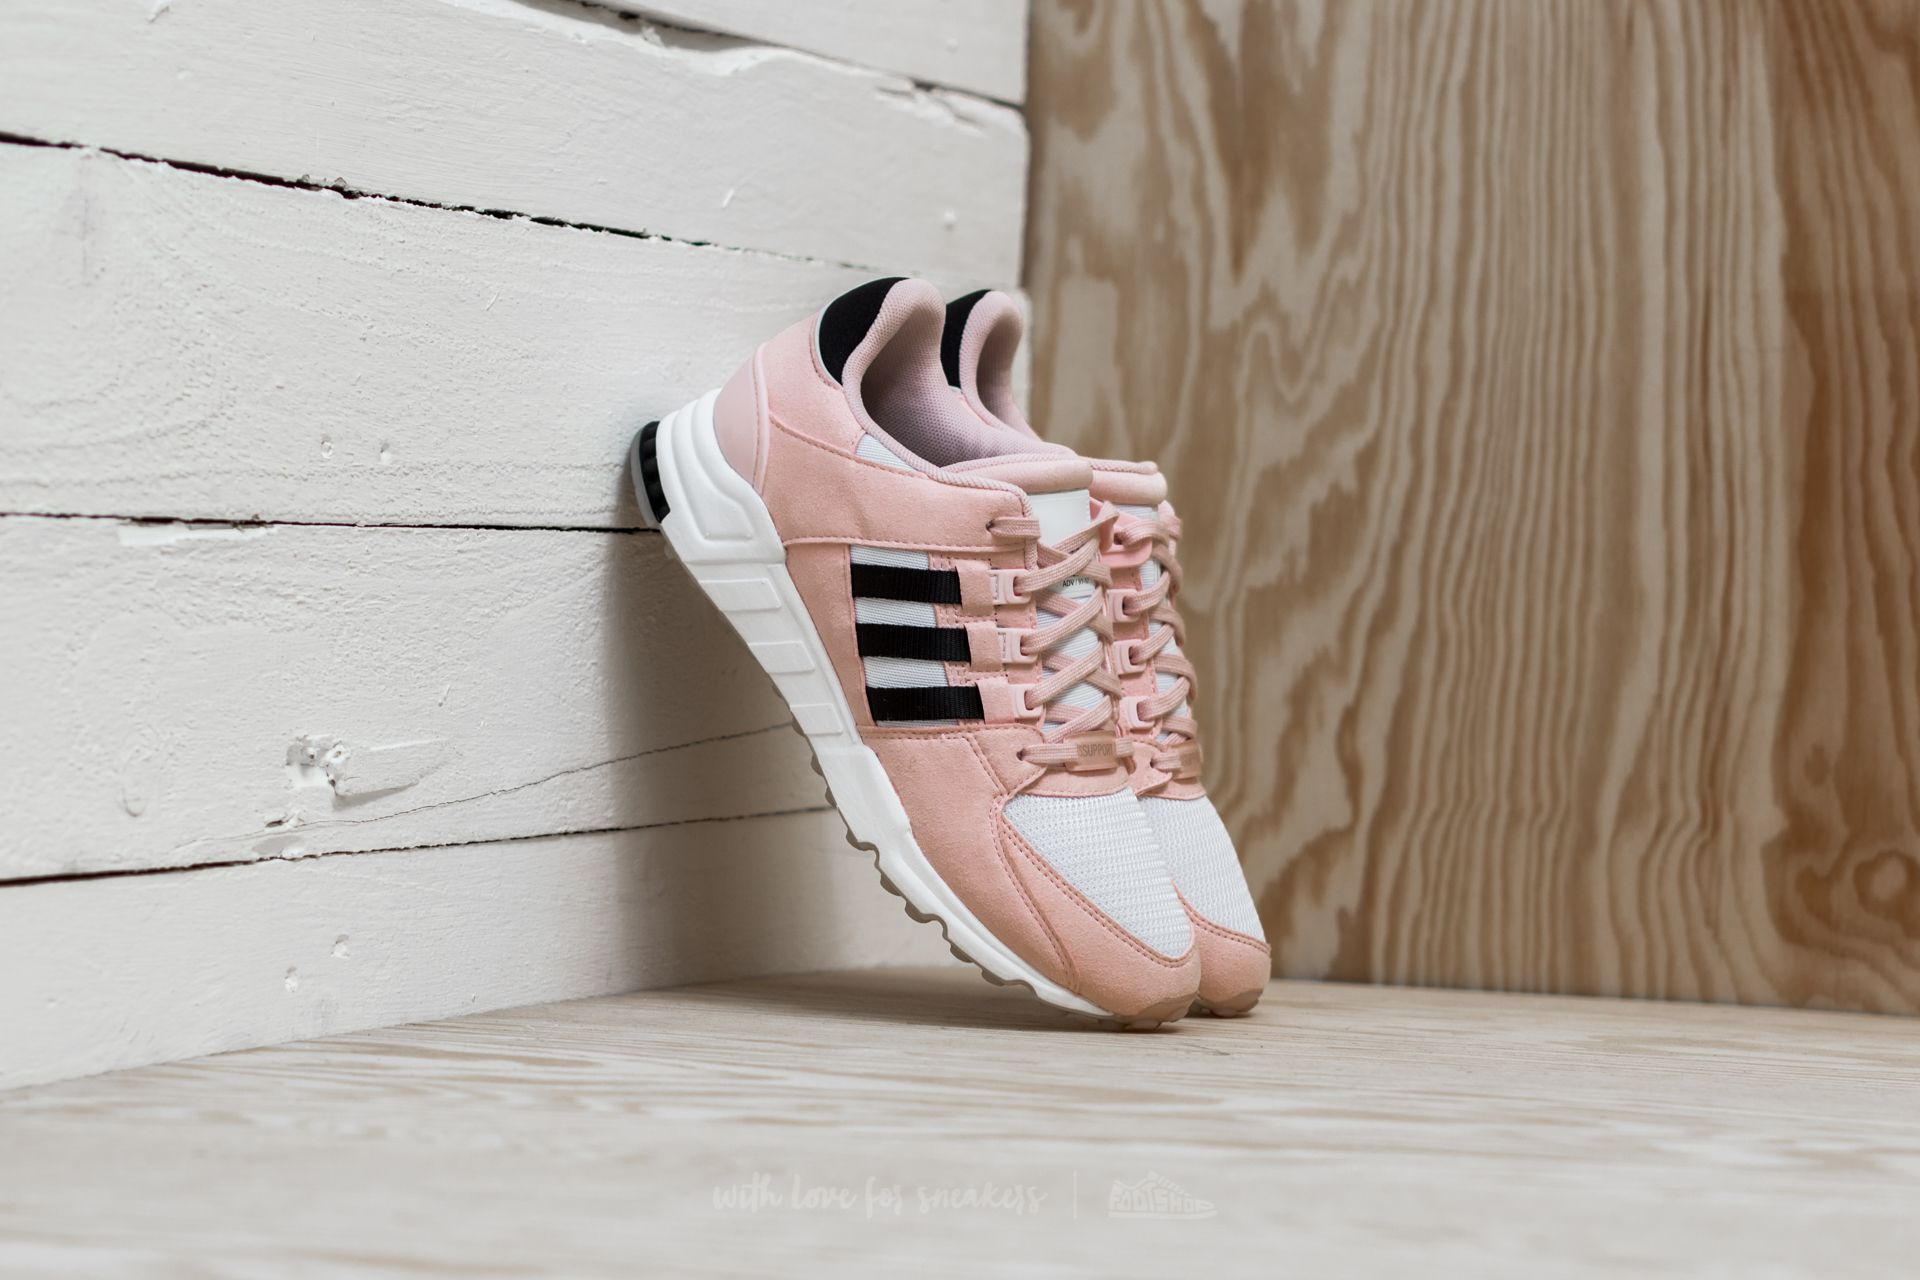 promo code 61b14 1bd25 adidas EQT Support RF W. Icey Pink Core Black Ftw White